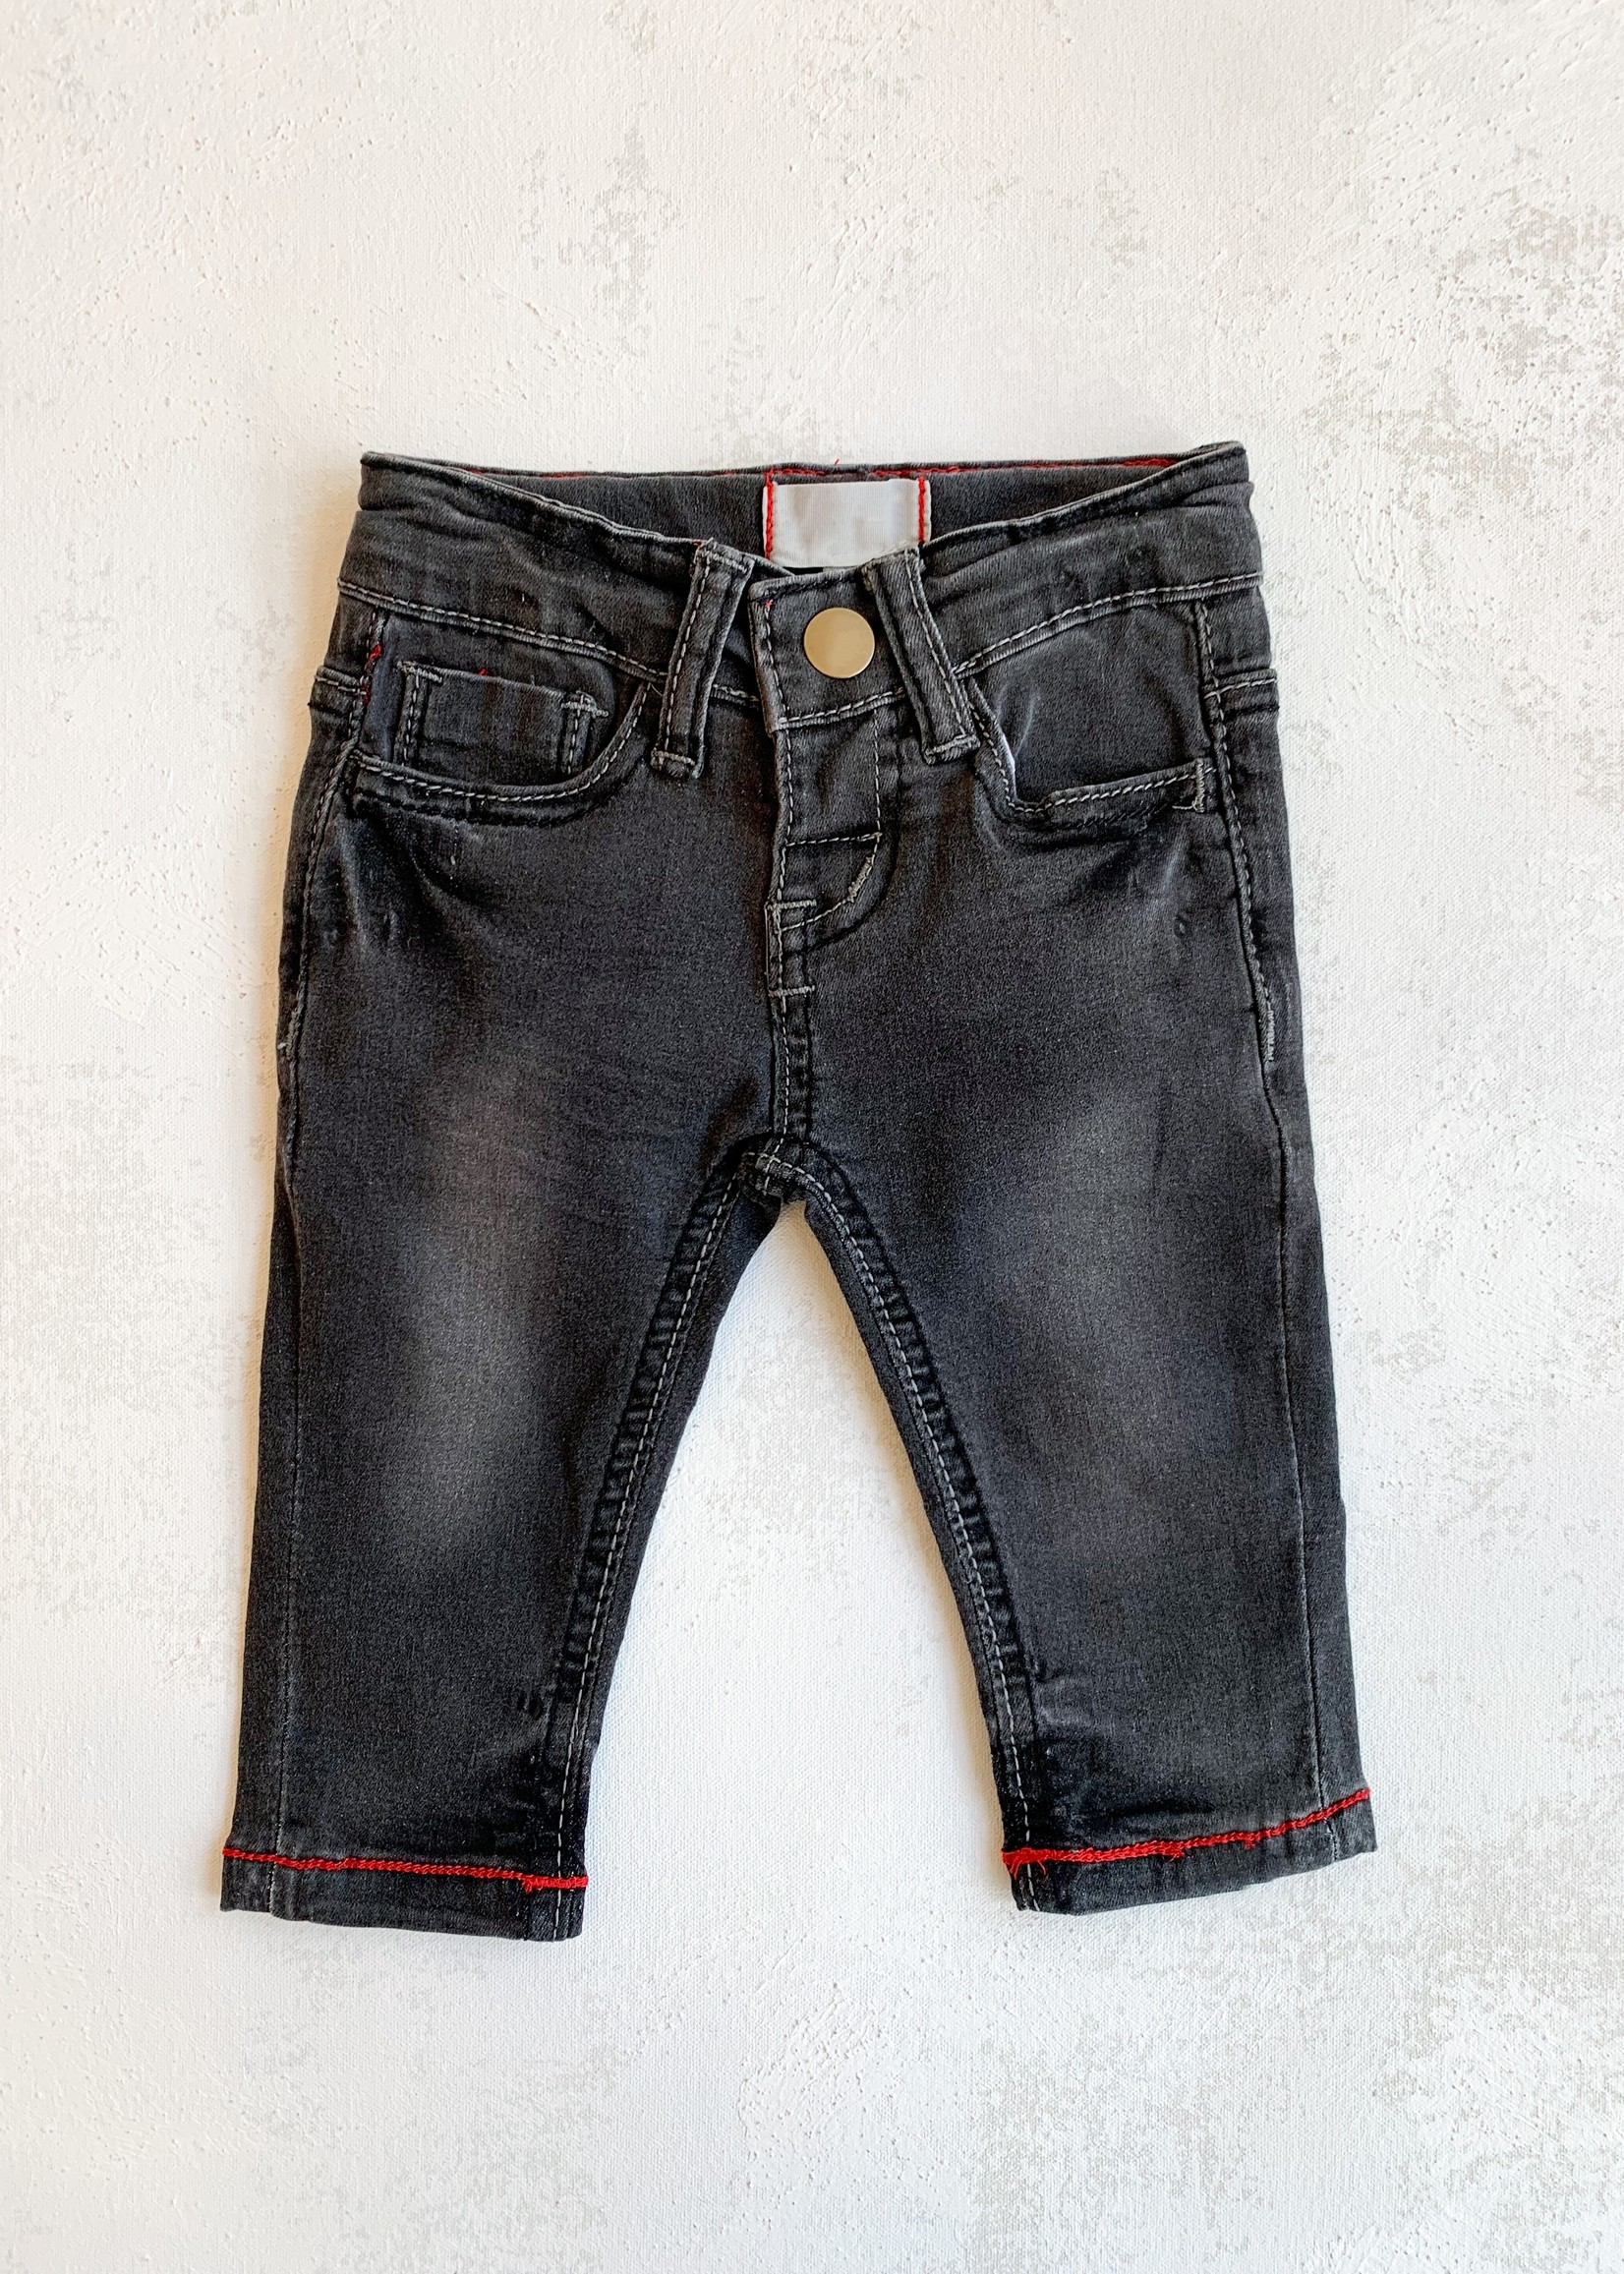 Elitaire Petite Price Jean in Charcoal